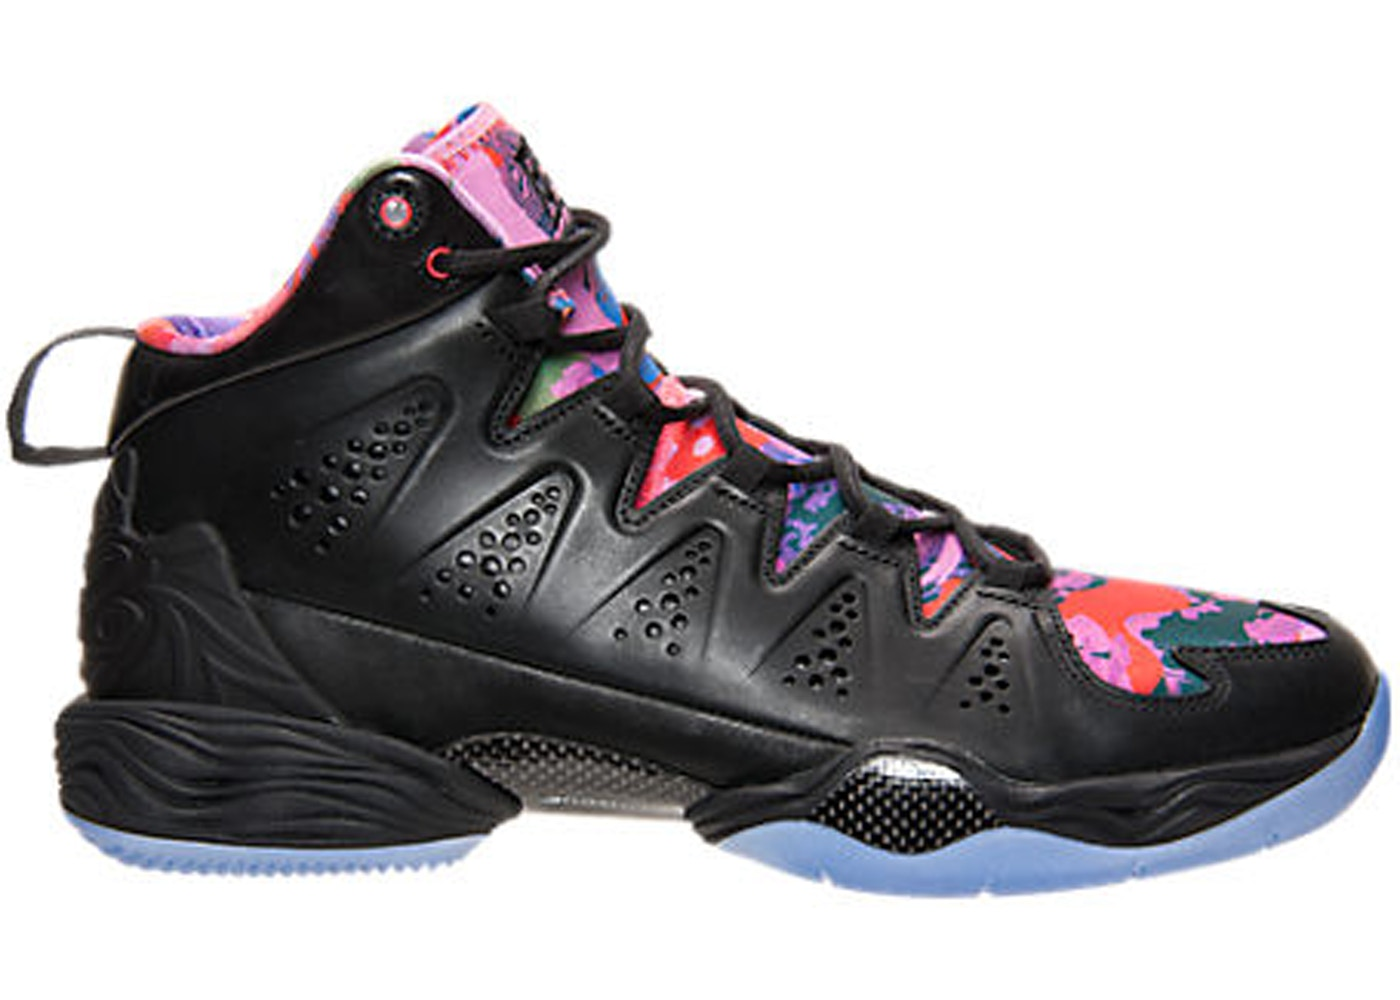 f66bbb22d9f8 Jordan Melo M10 Year Of The Horse - 649352-040